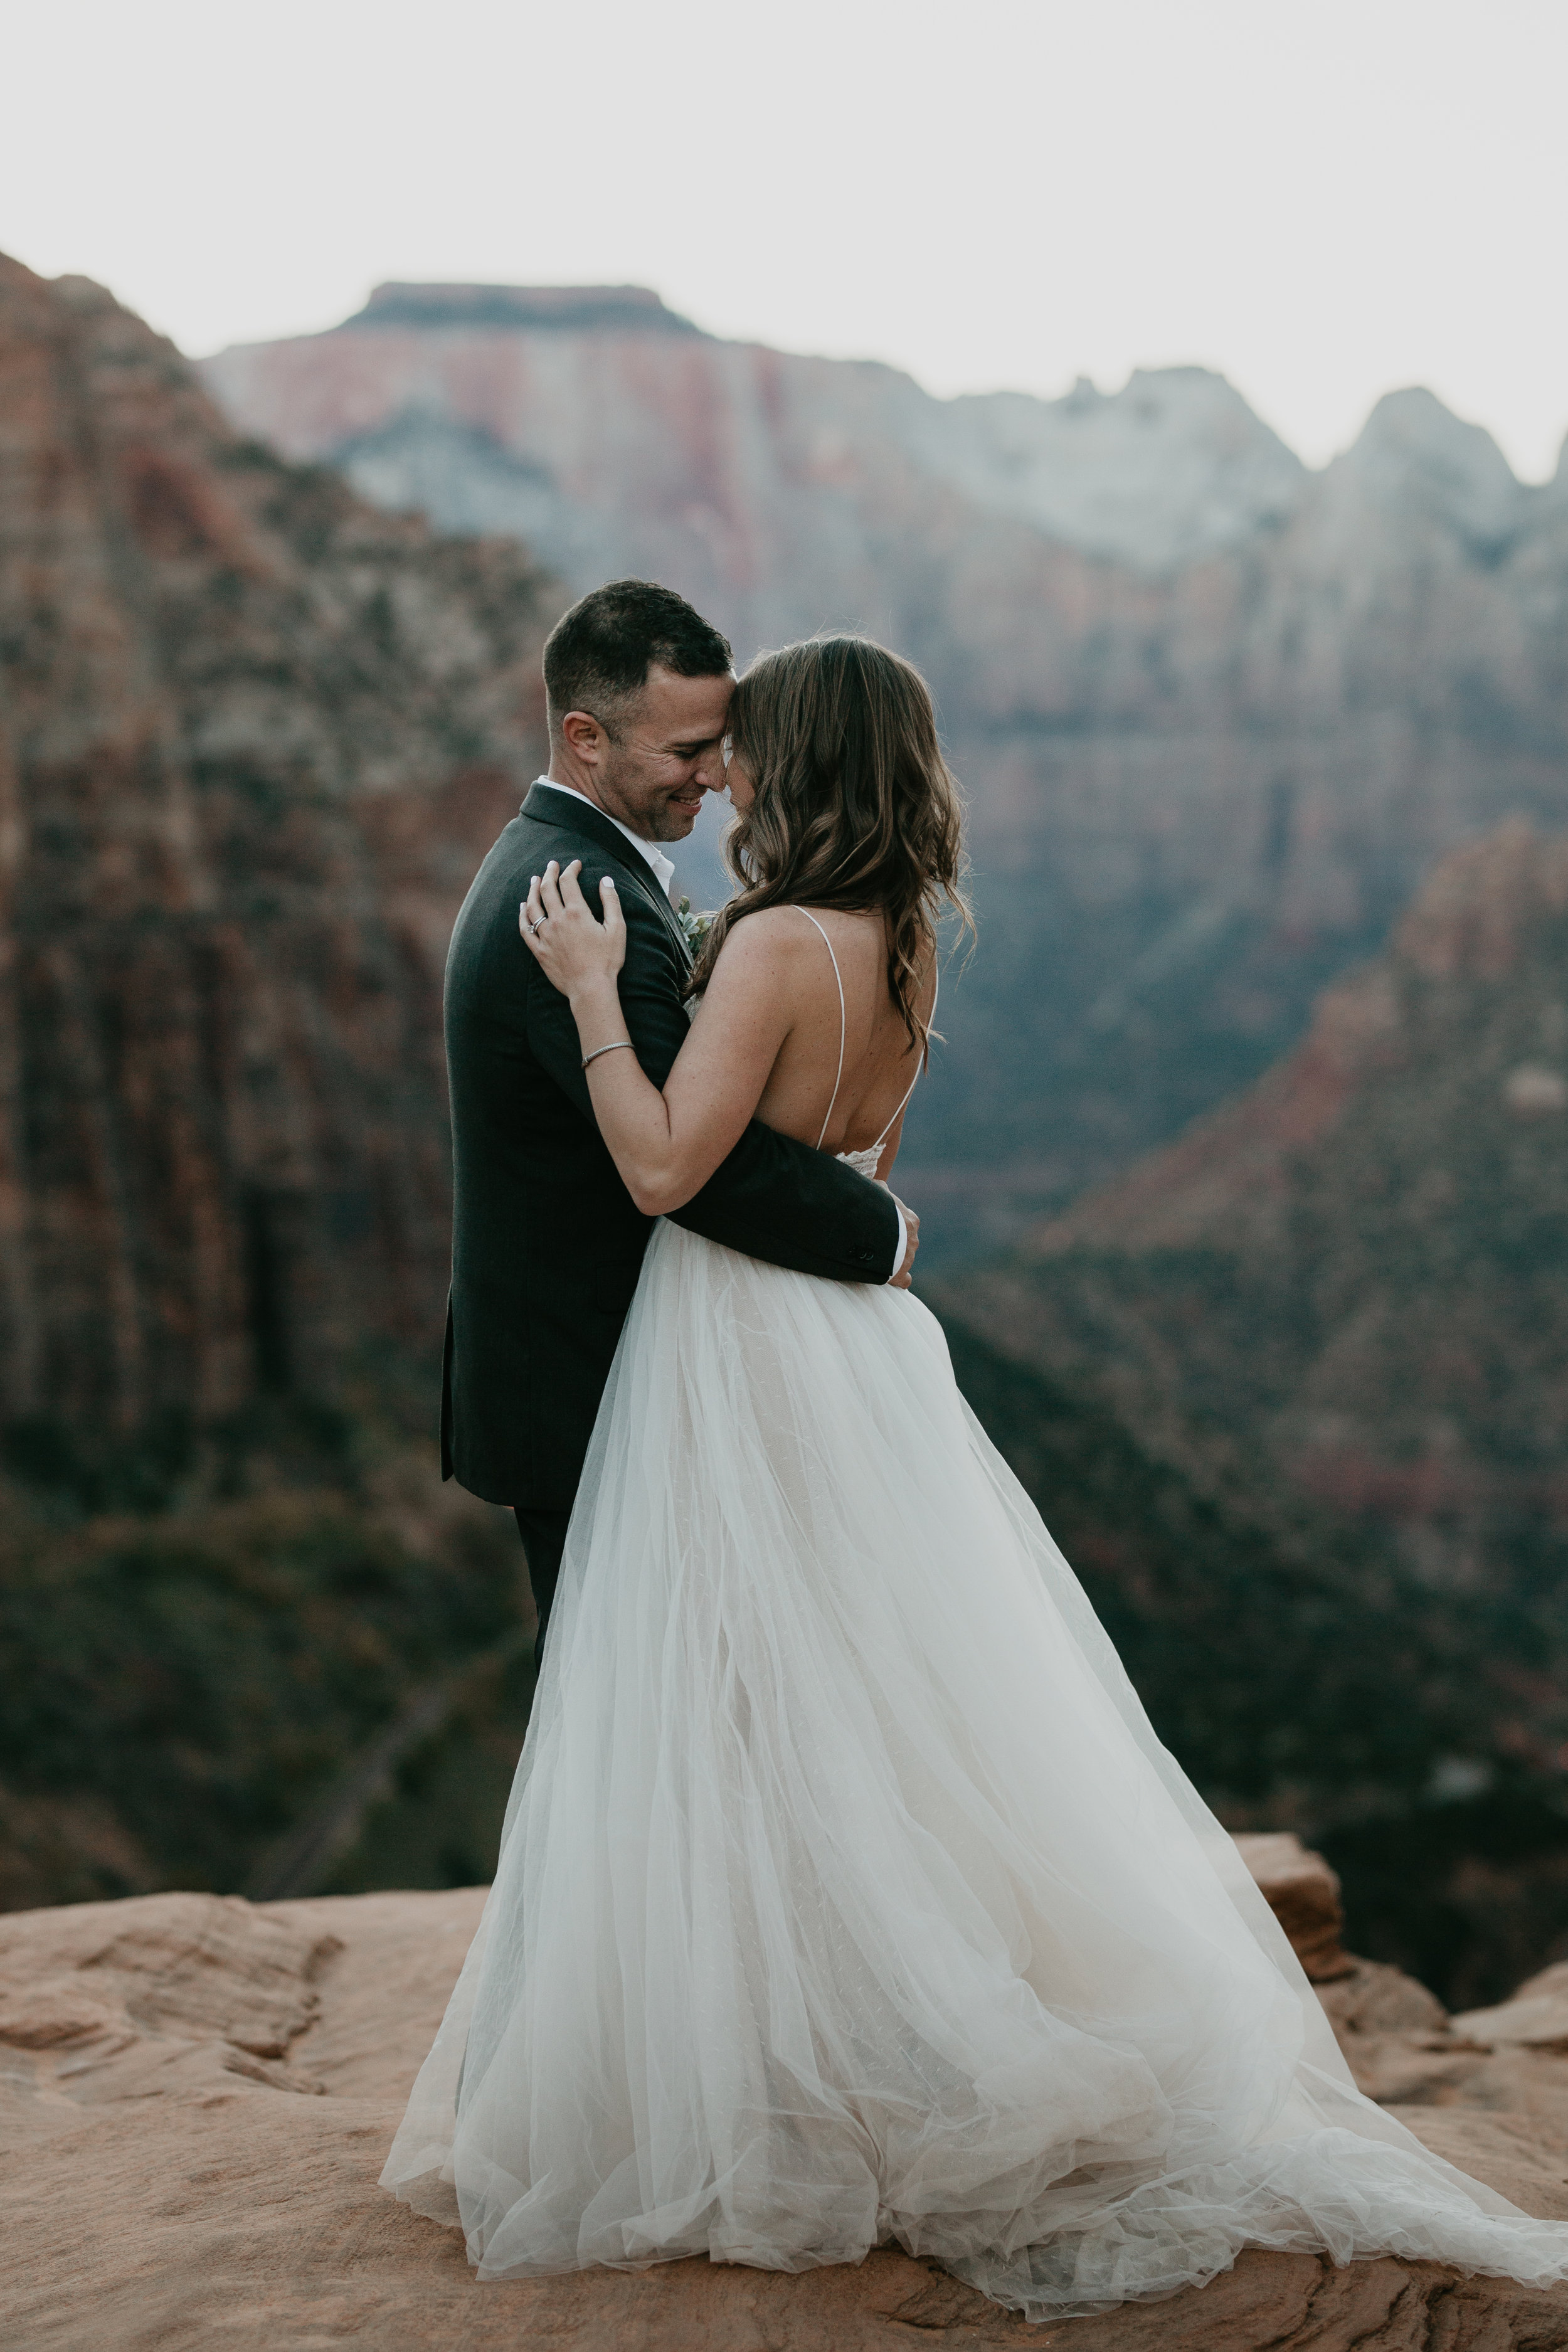 nicole-daacke-photography-zion-national-park-elopement-photographer-canyon-overlook-trail-elope-hiking-adventure-wedding-photos-fall-utah-red-rock-canyon-stgeorge-eloping-photographer-81.jpg